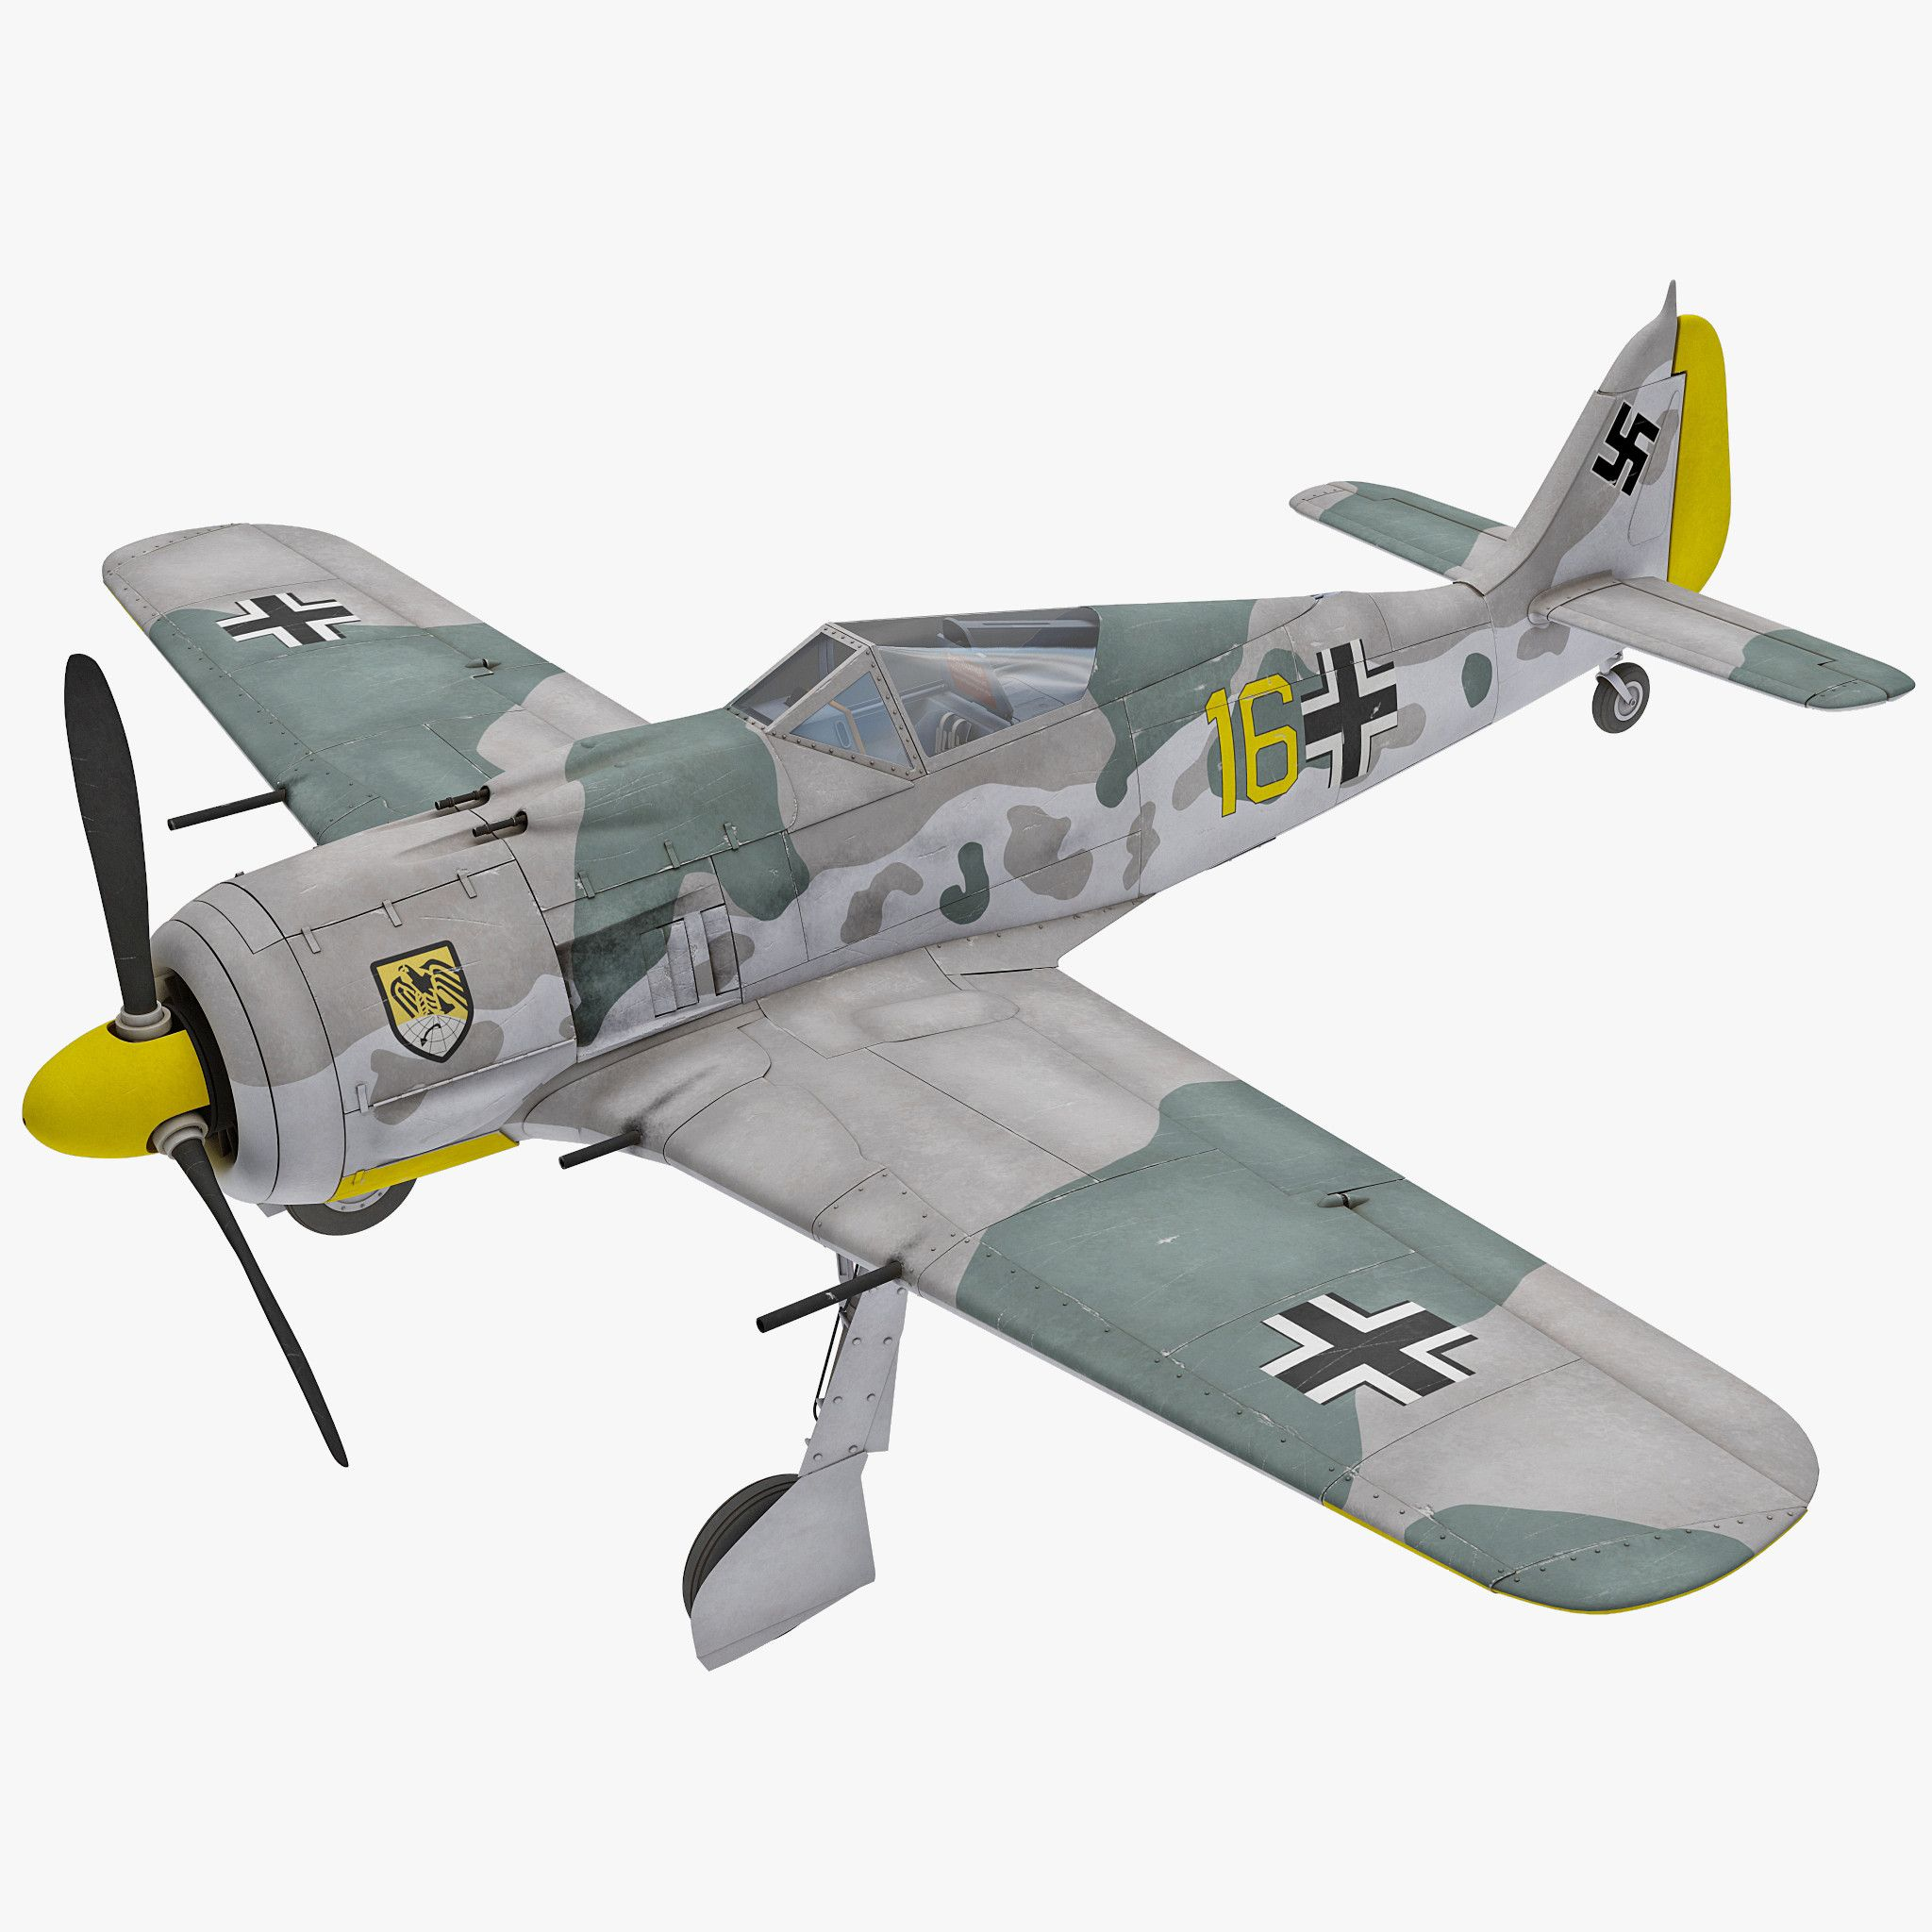 Ww2 Plane Drawing | Free download best Ww2 Plane Drawing on